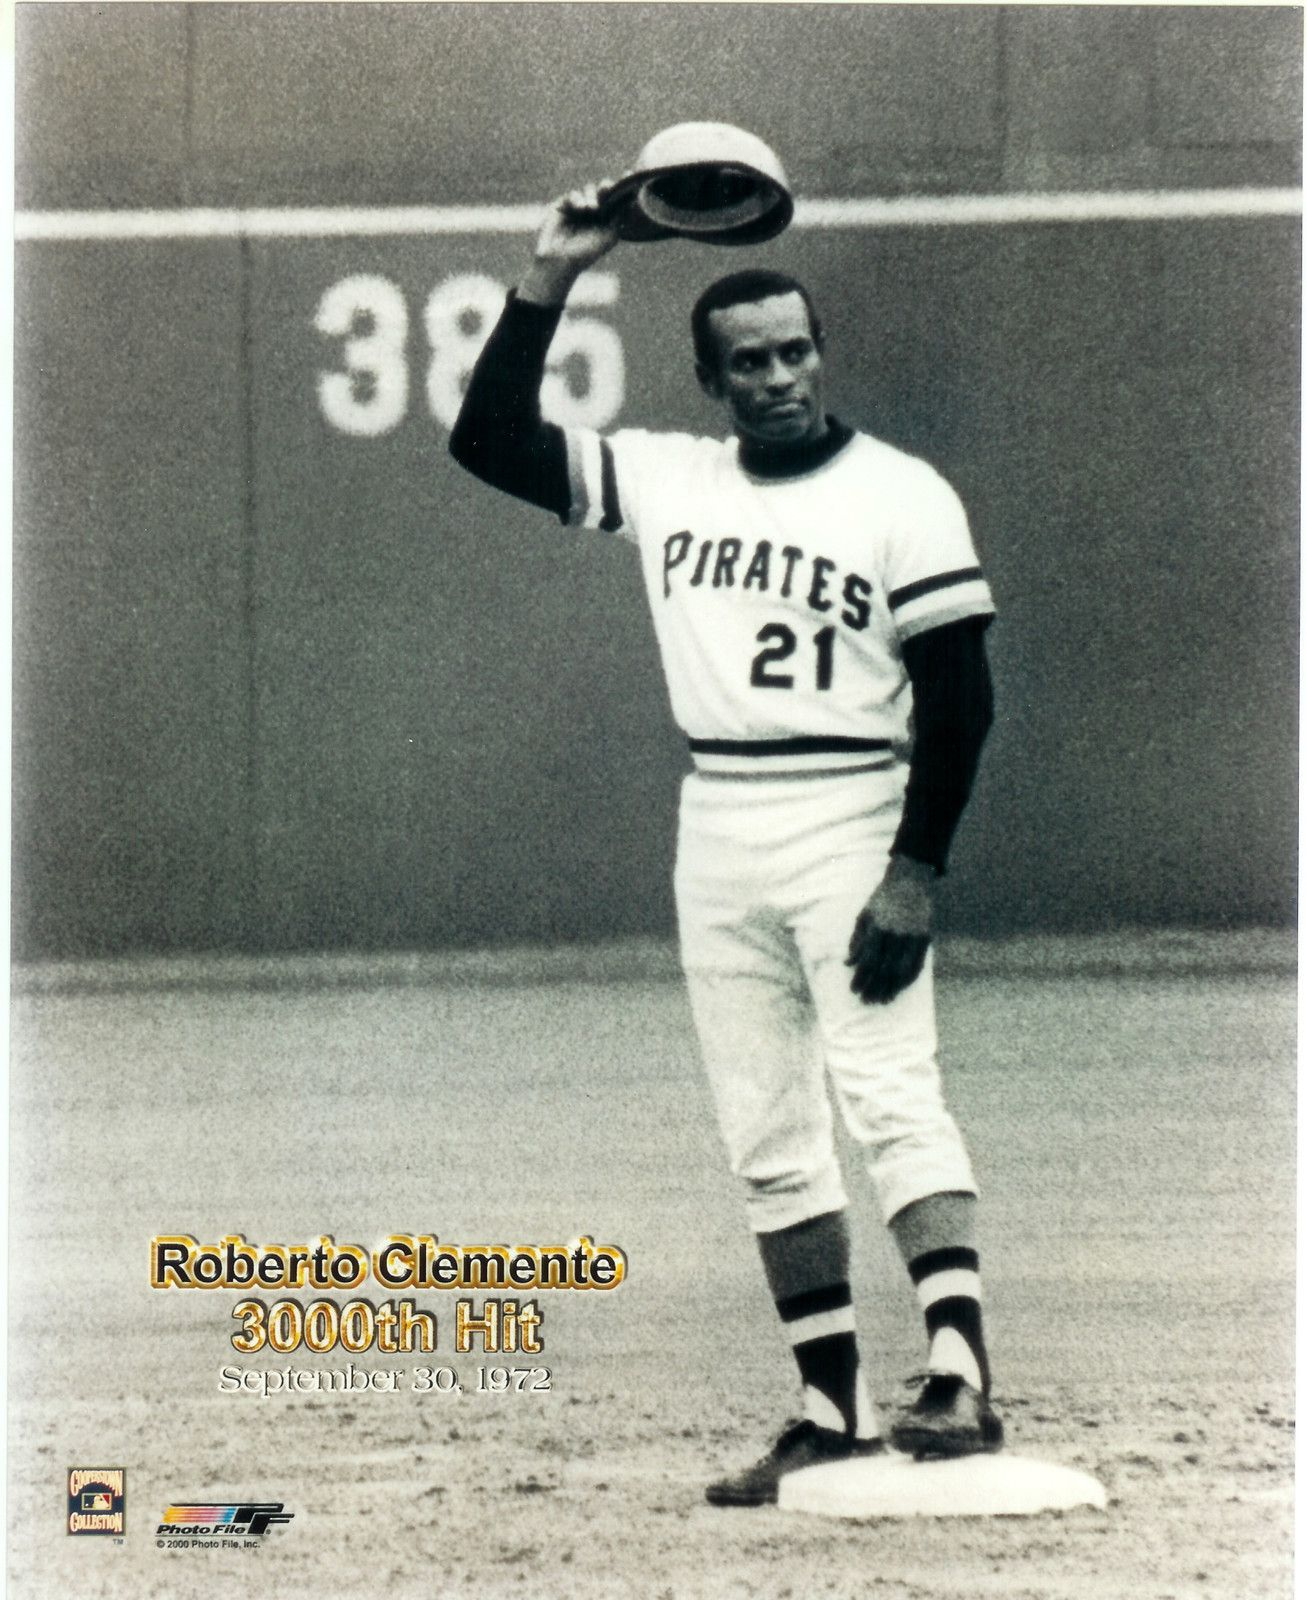 Details About Roberto Clemente Legends Of The Game 8x10 Photo Pittsburgh Pirates